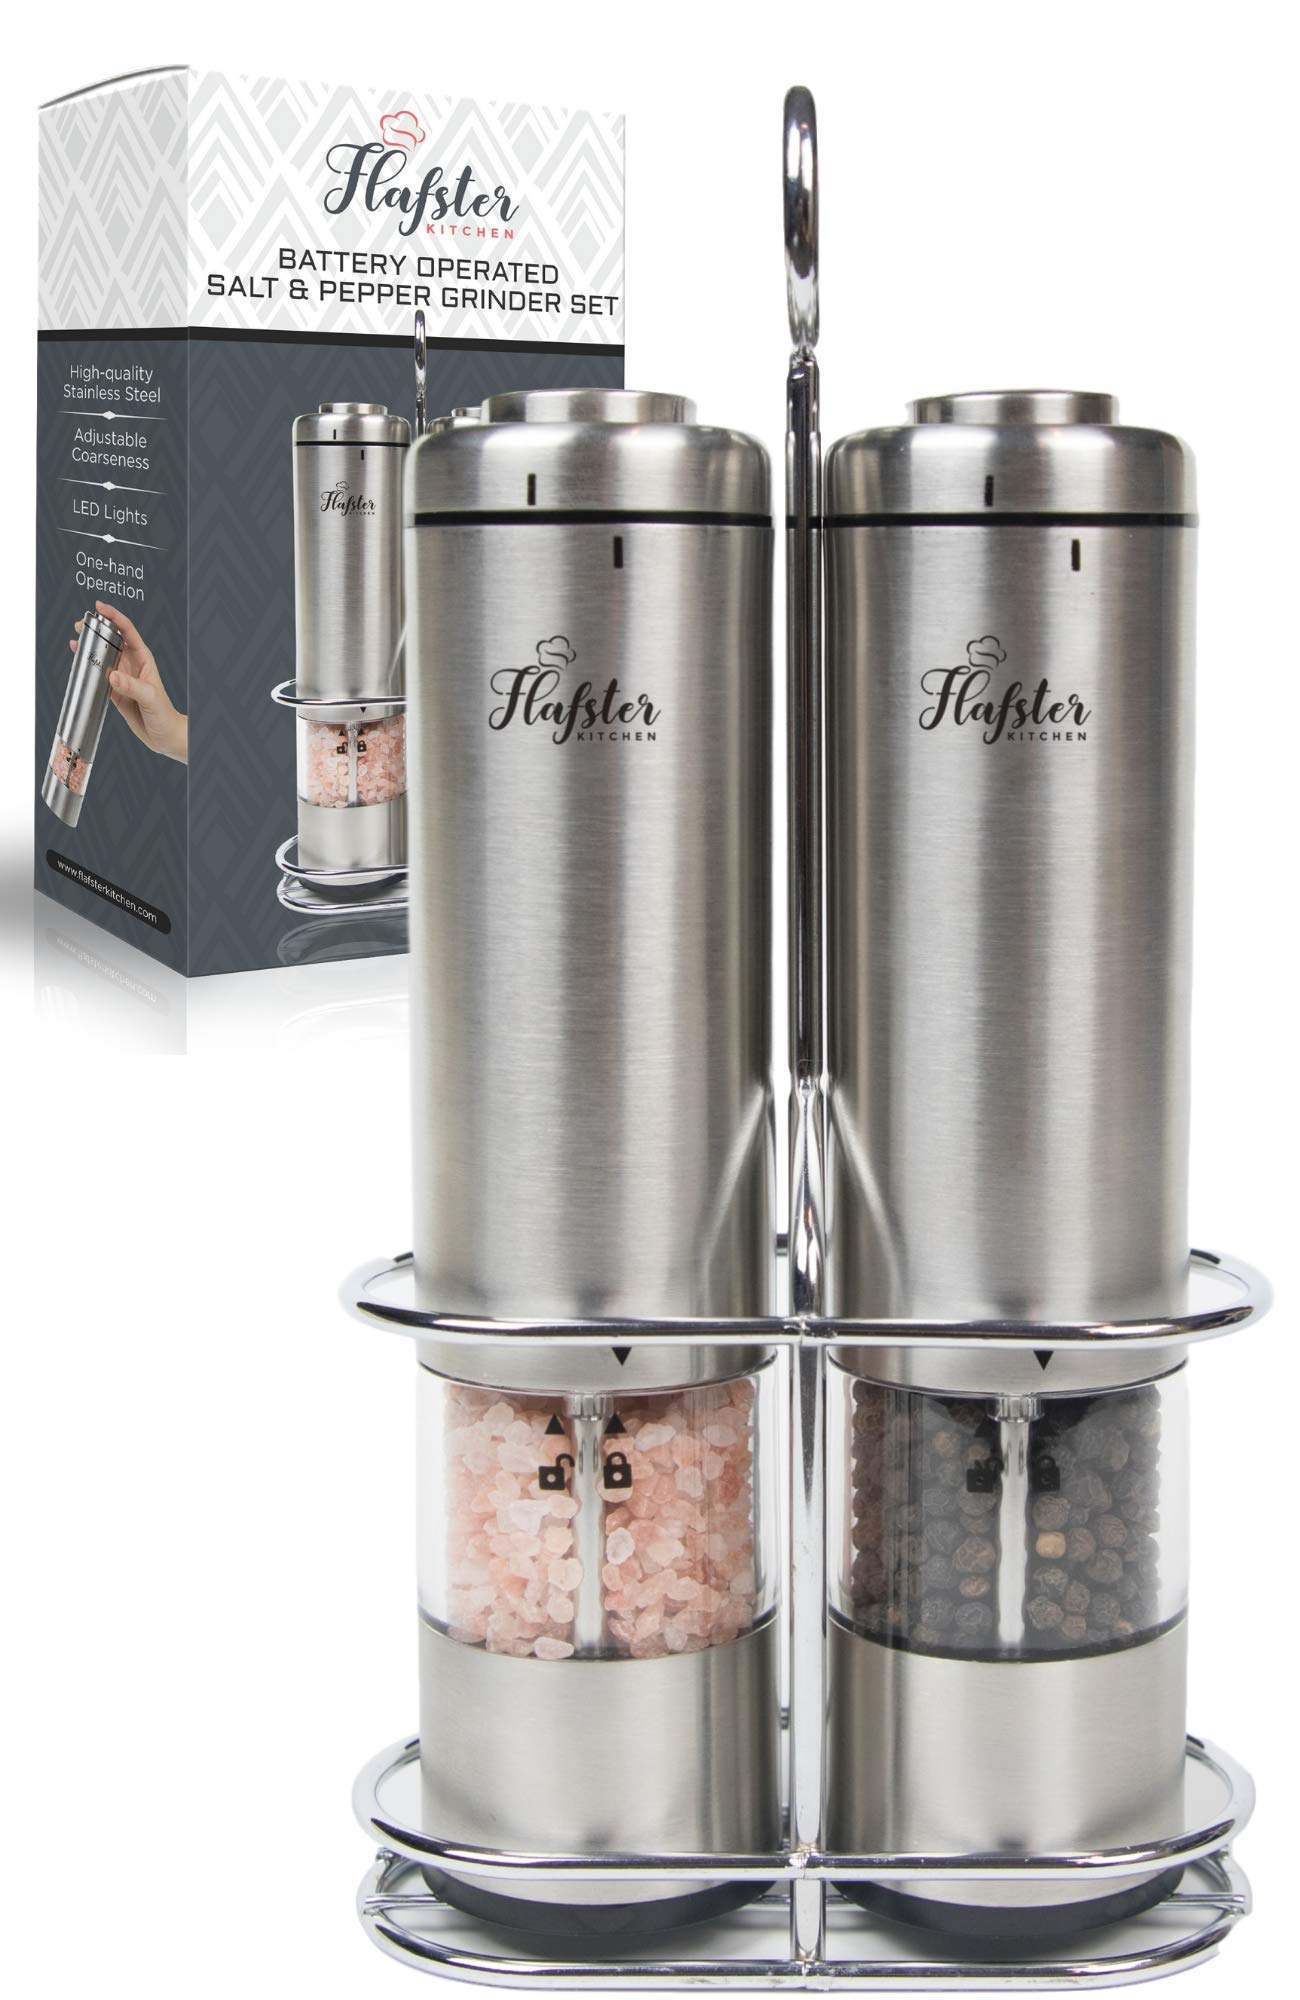 Battery Operated Salt and Pepper Grinder Set - Electric Stainless Steel Salt&Pepper Mills(2) by Flafster Kitchen -Tall Power Shakers with Stand - Ceramic Grinders with lights and Adjustable Coarseness by FLAFSTER KITCHEN